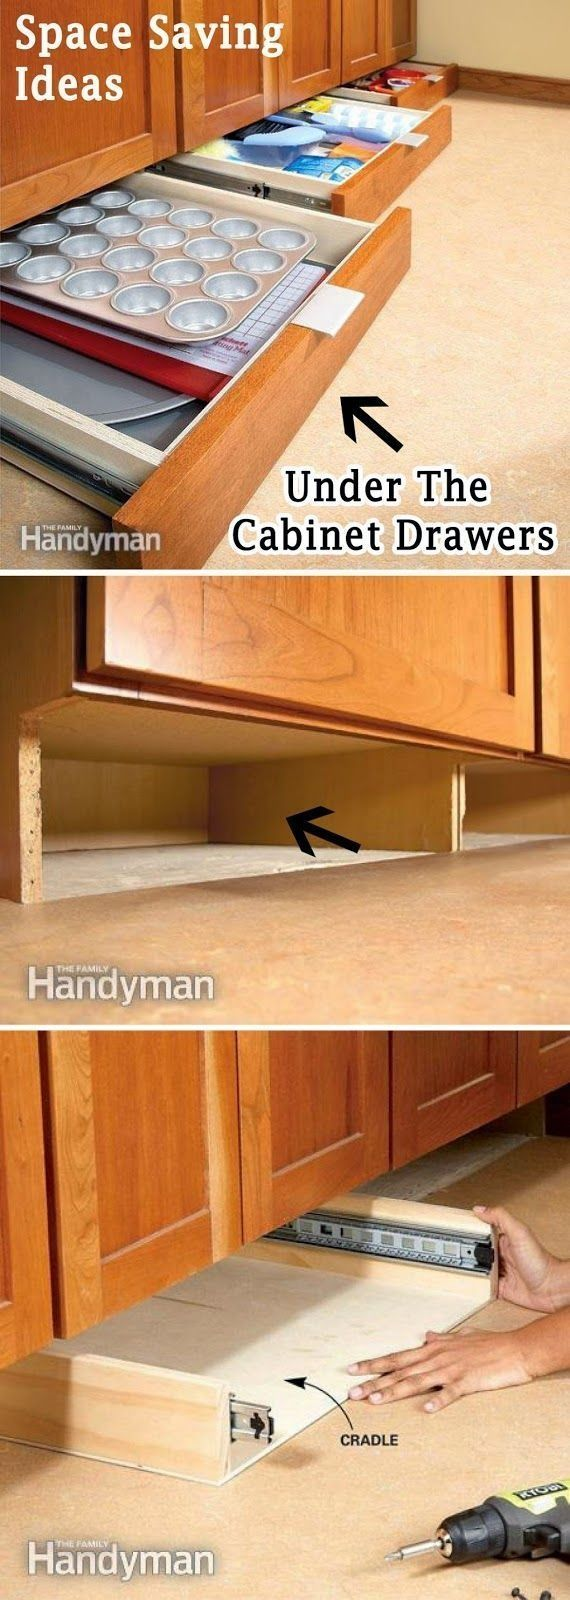 Home Remedies For Cleaning Wood Furniture Creative Remodelling Adorable 25 Unique Clean Cabinets Ideas On Pinterest  Cleaning Cabinets . Design Decoration